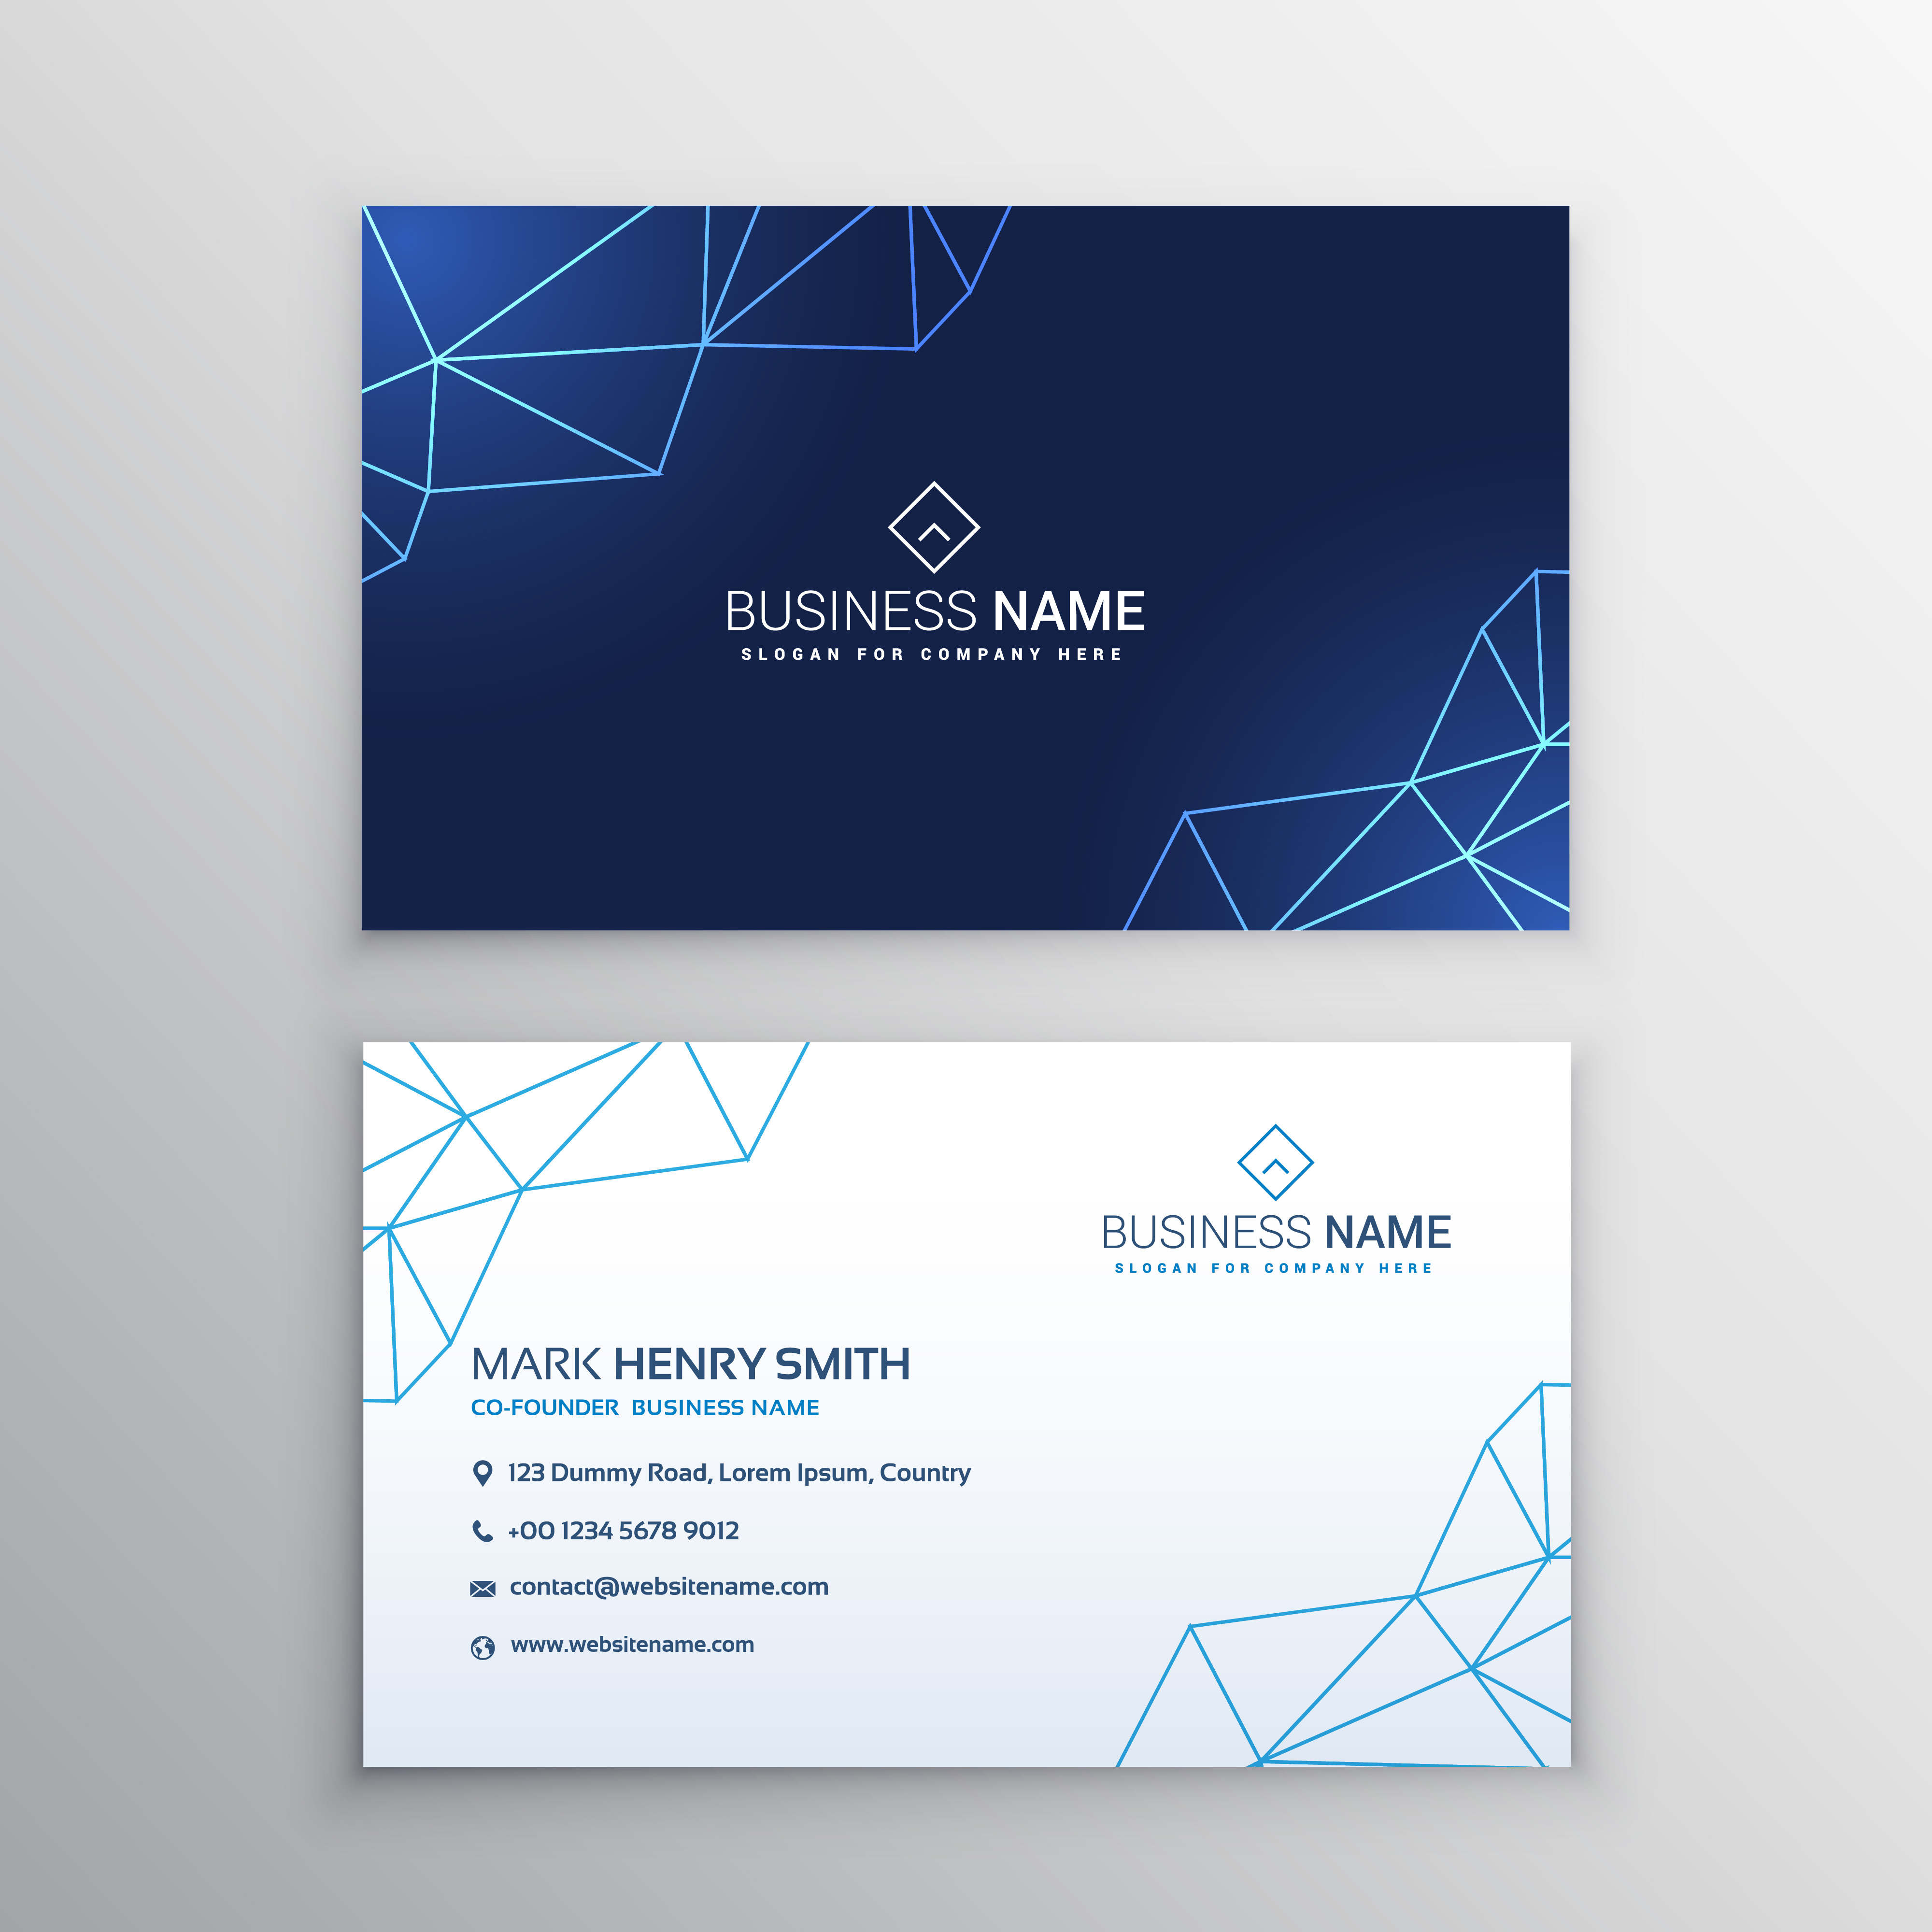 Business Card Layout Template: Technology Business Card Design Template